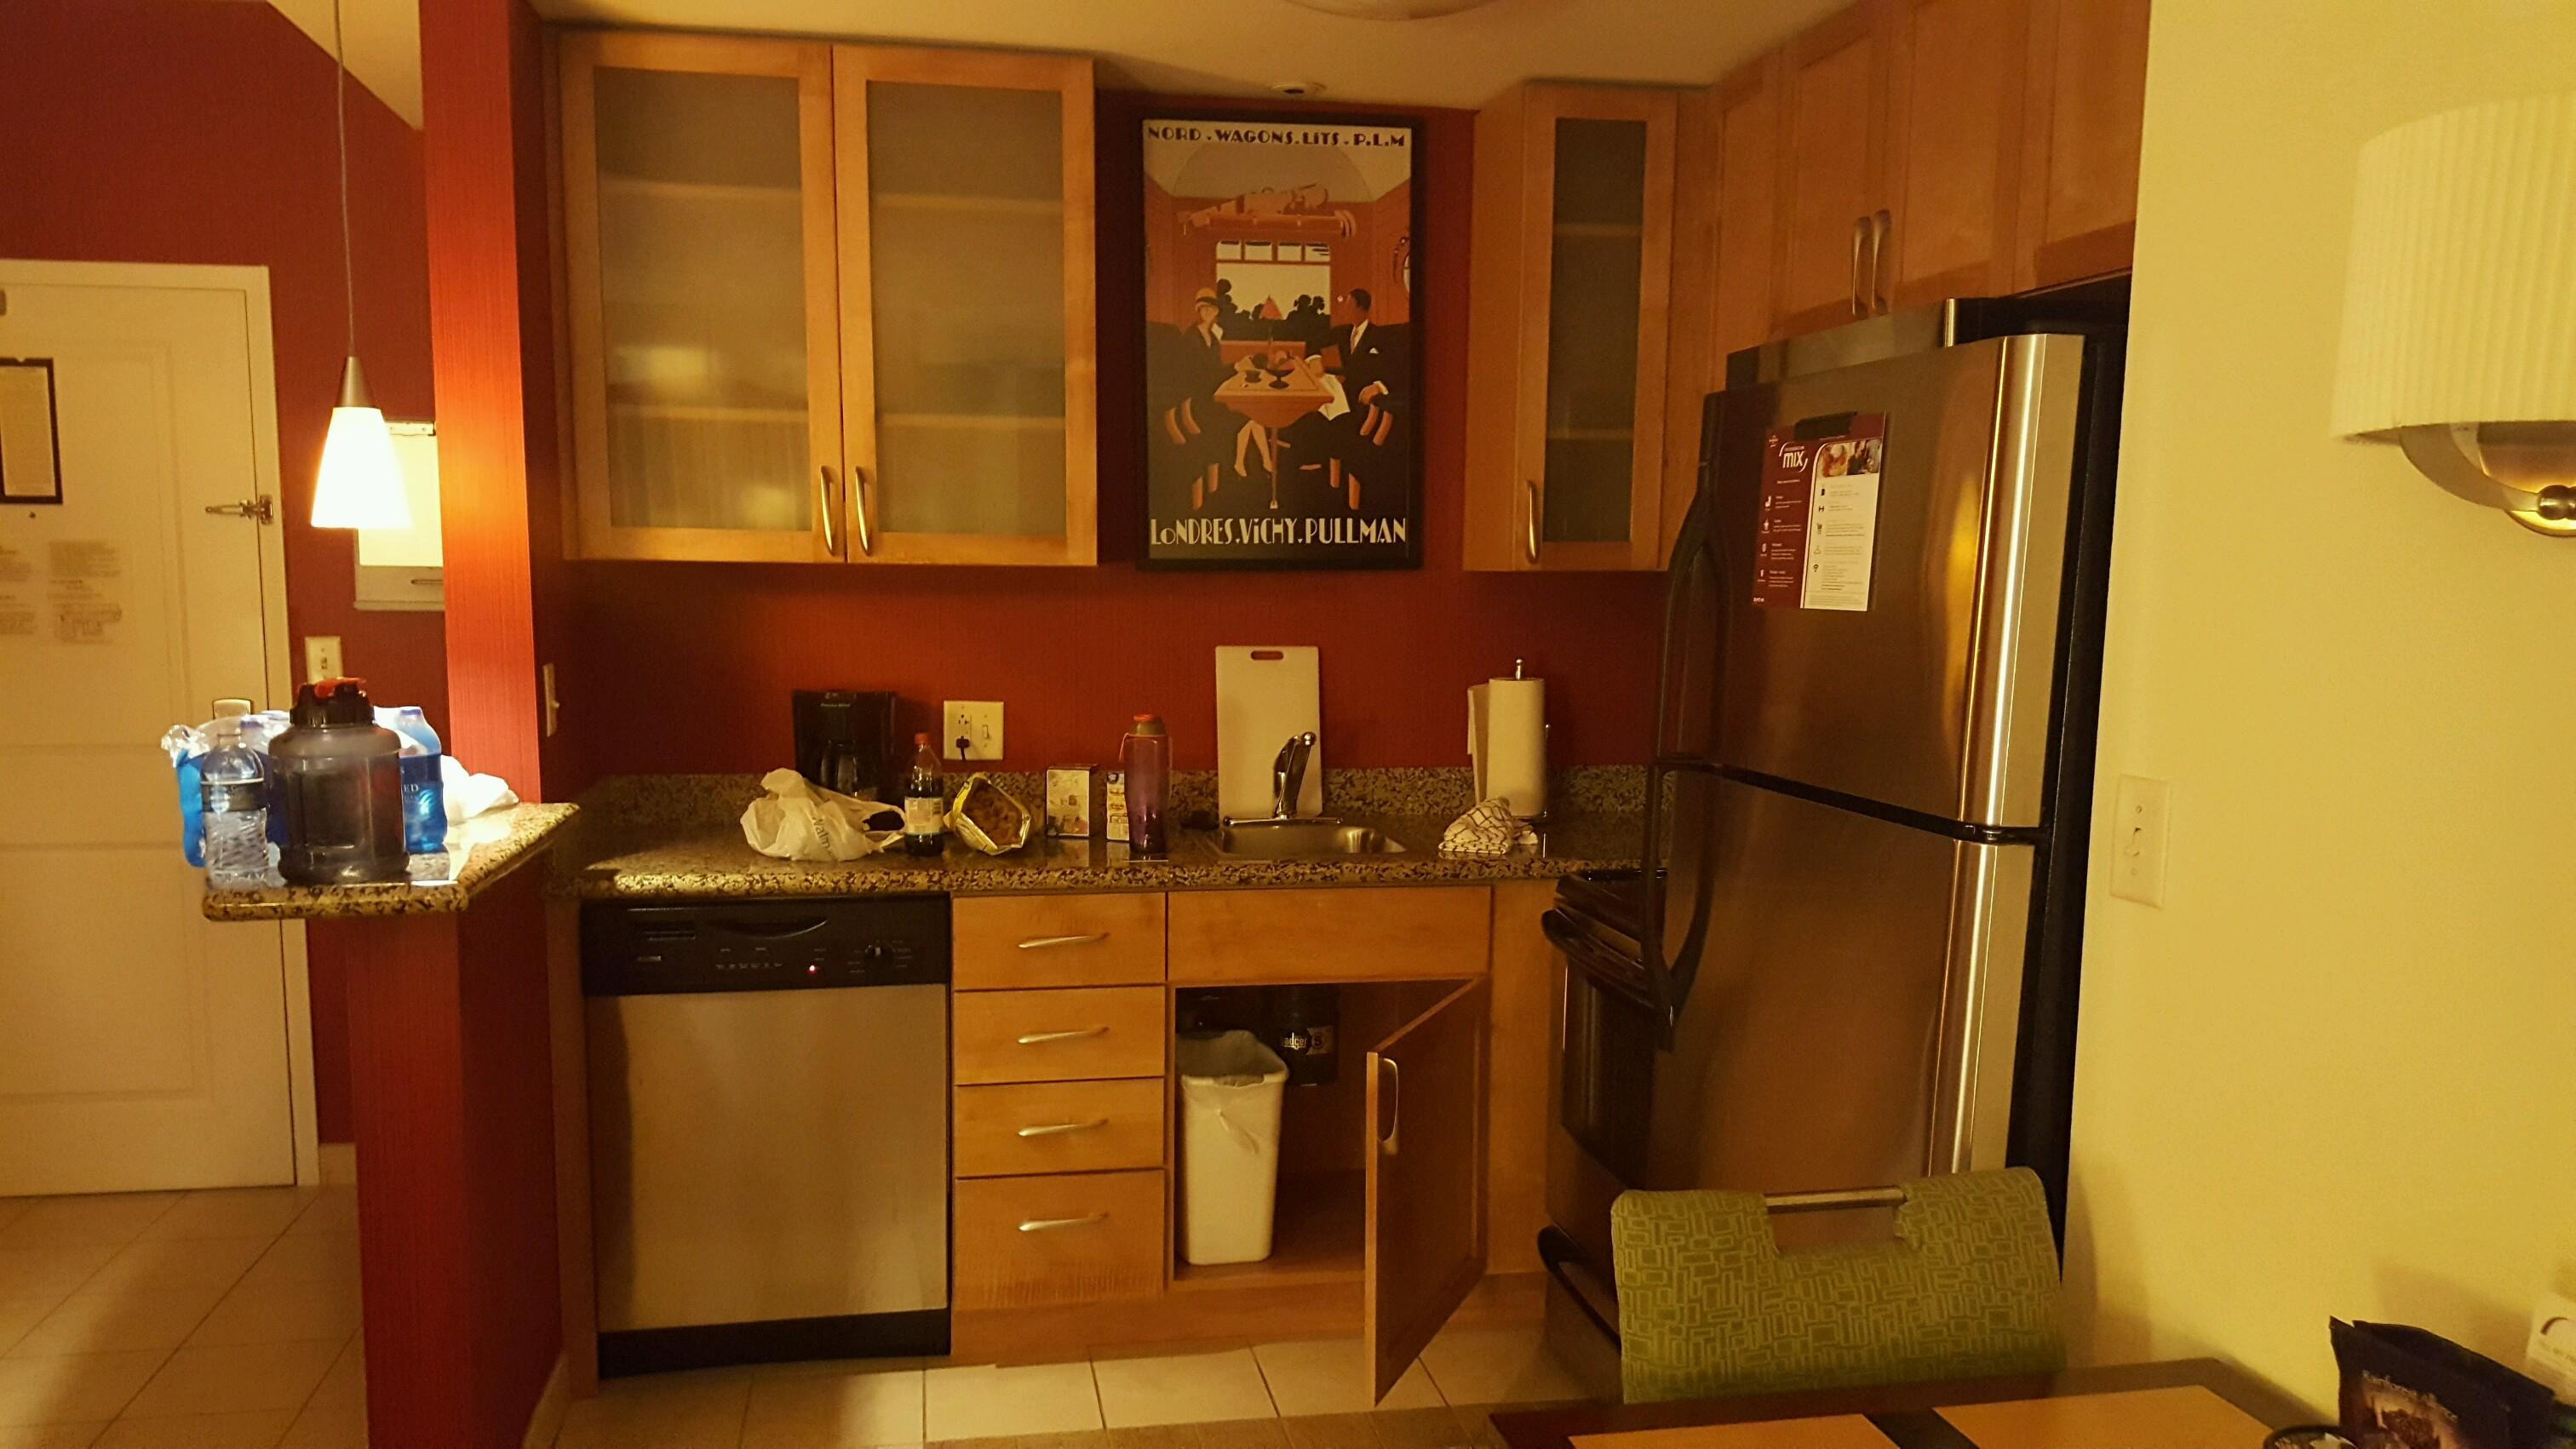 The Kitchen area.